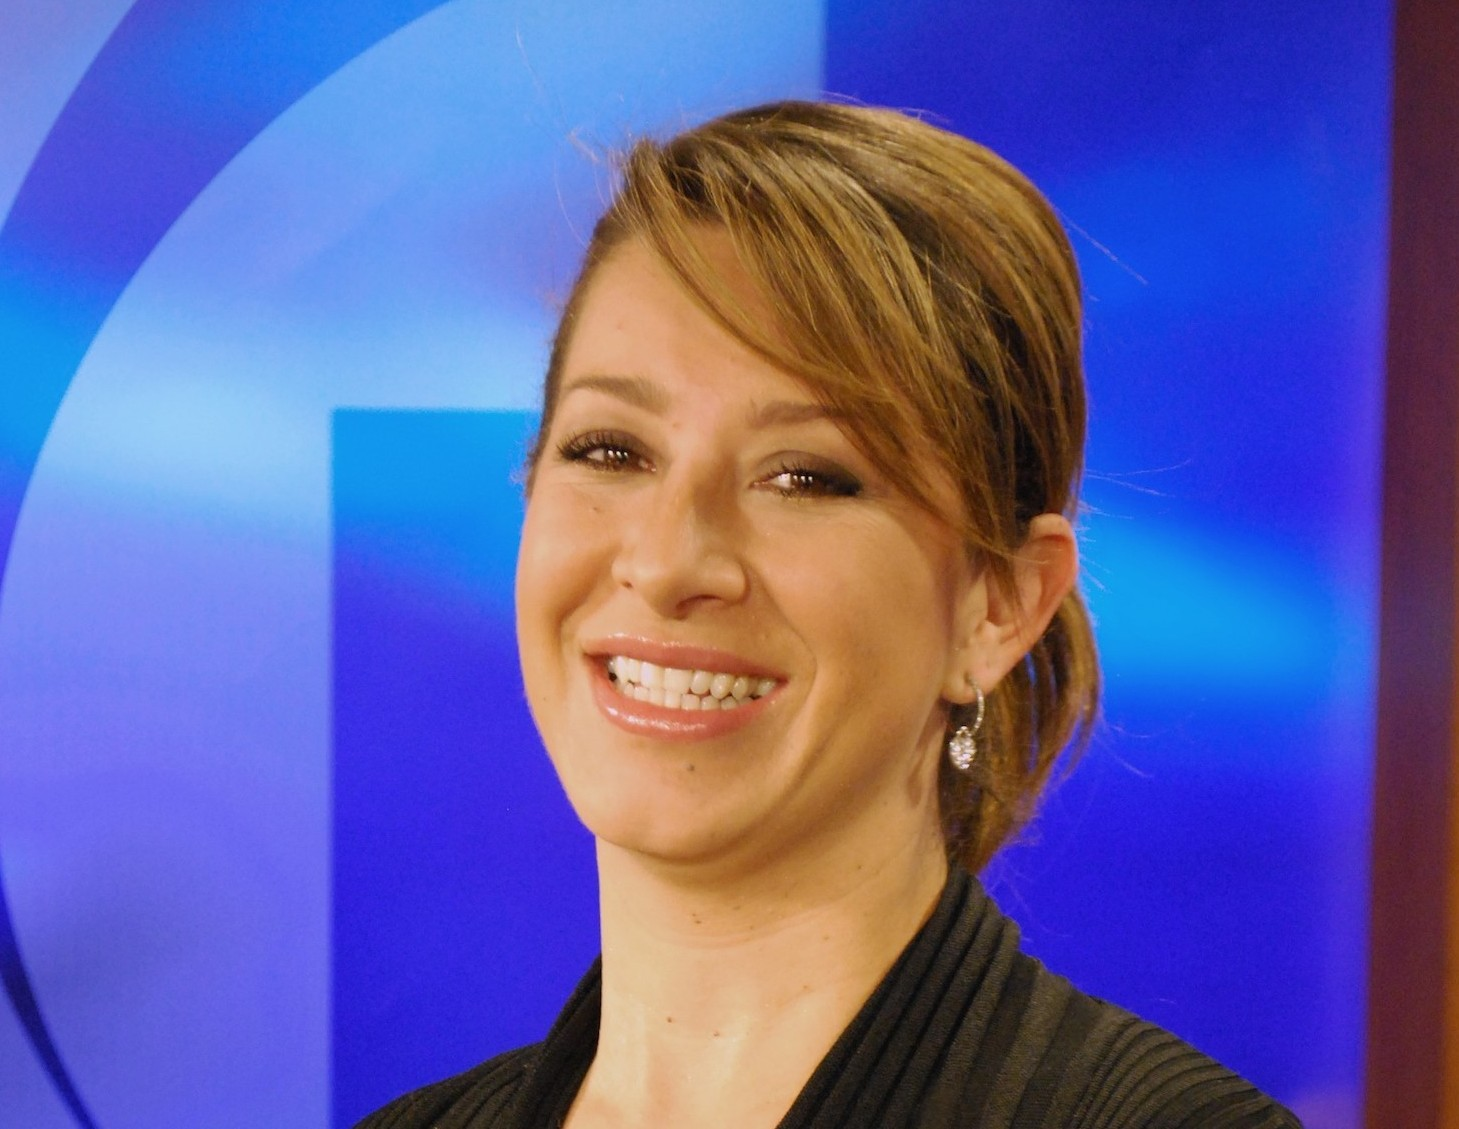 Ospina named Assistant News Director at KTMD